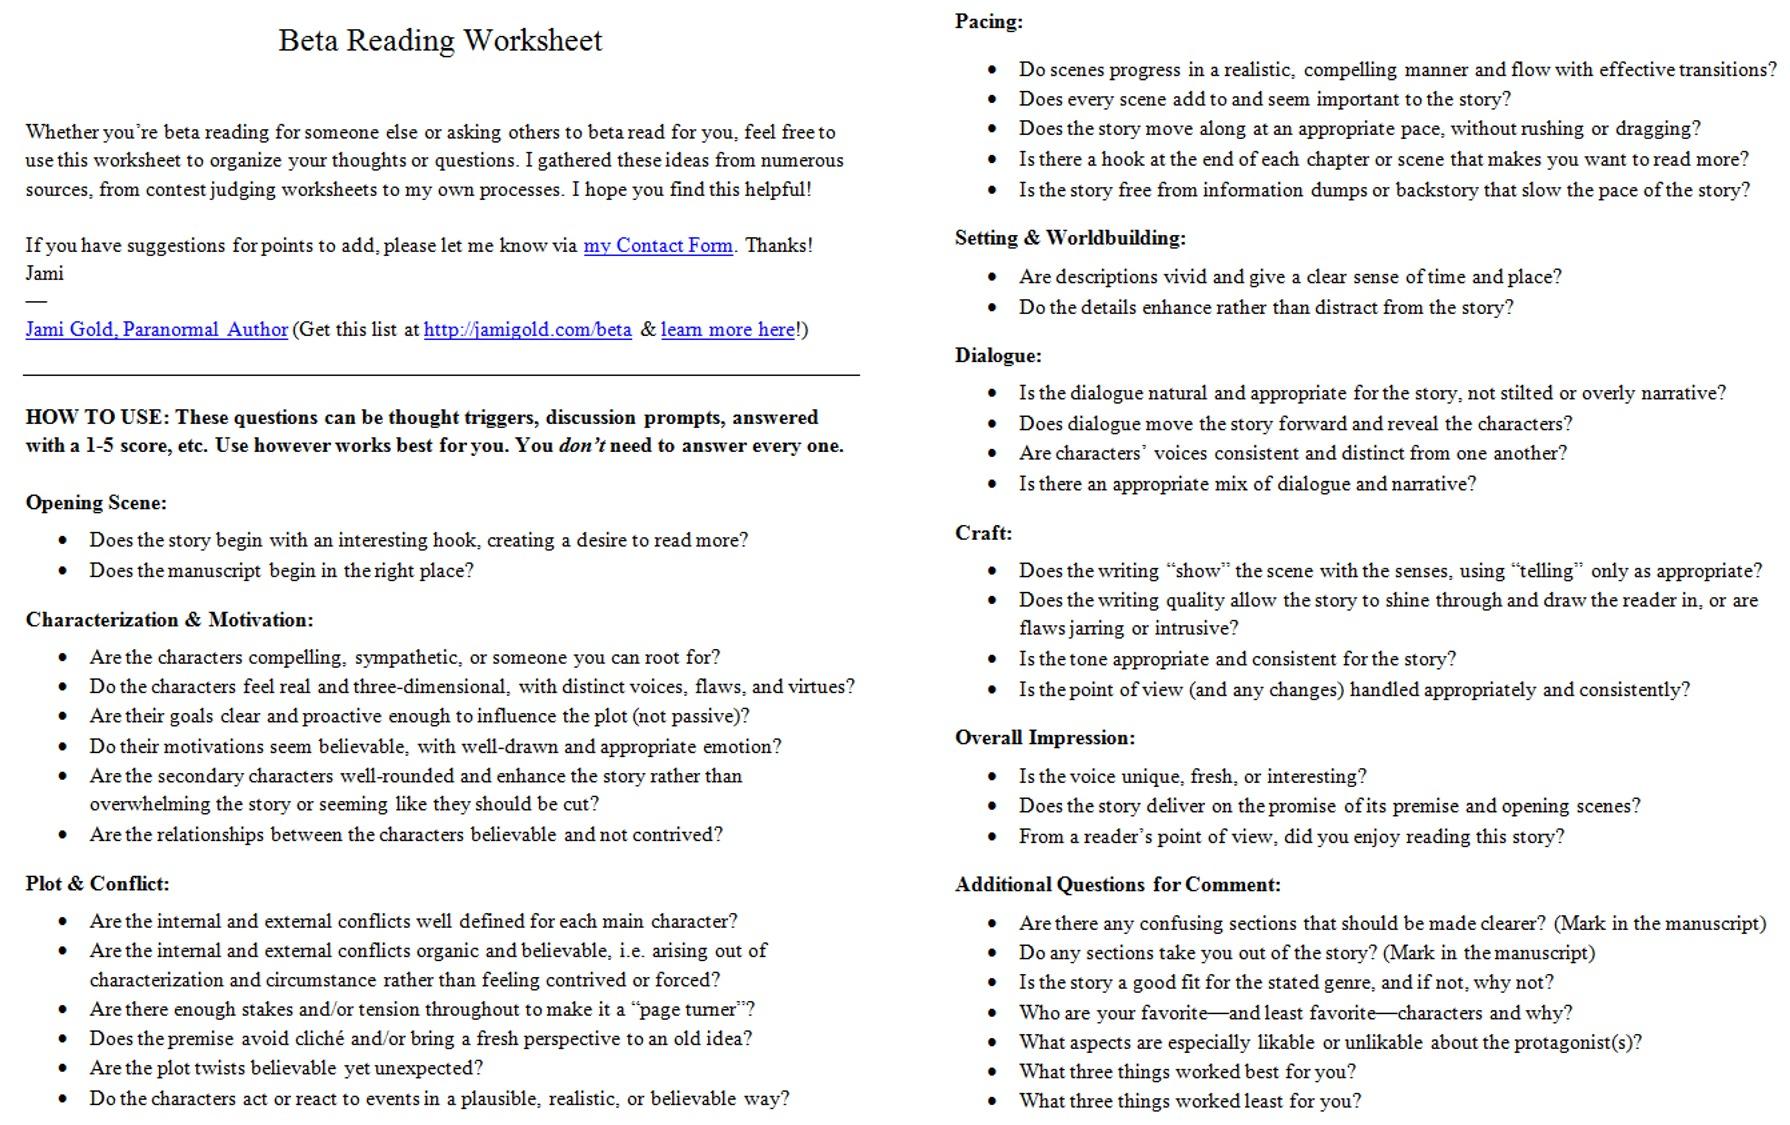 Aldiablosus  Pretty Worksheets For Writers  Jami Gold Paranormal Author With Gorgeous Screen Shot Of The Twopage Beta Reading Worksheet With Awesome Grade  Phonics Worksheets Also Worksheets On Fractions For Grade  In Addition D Shapes Nets Worksheet And French Direct Object Pronouns Worksheet As Well As English Grammar Contractions Worksheets Additionally About Math Worksheets From Jamigoldcom With Aldiablosus  Gorgeous Worksheets For Writers  Jami Gold Paranormal Author With Awesome Screen Shot Of The Twopage Beta Reading Worksheet And Pretty Grade  Phonics Worksheets Also Worksheets On Fractions For Grade  In Addition D Shapes Nets Worksheet From Jamigoldcom